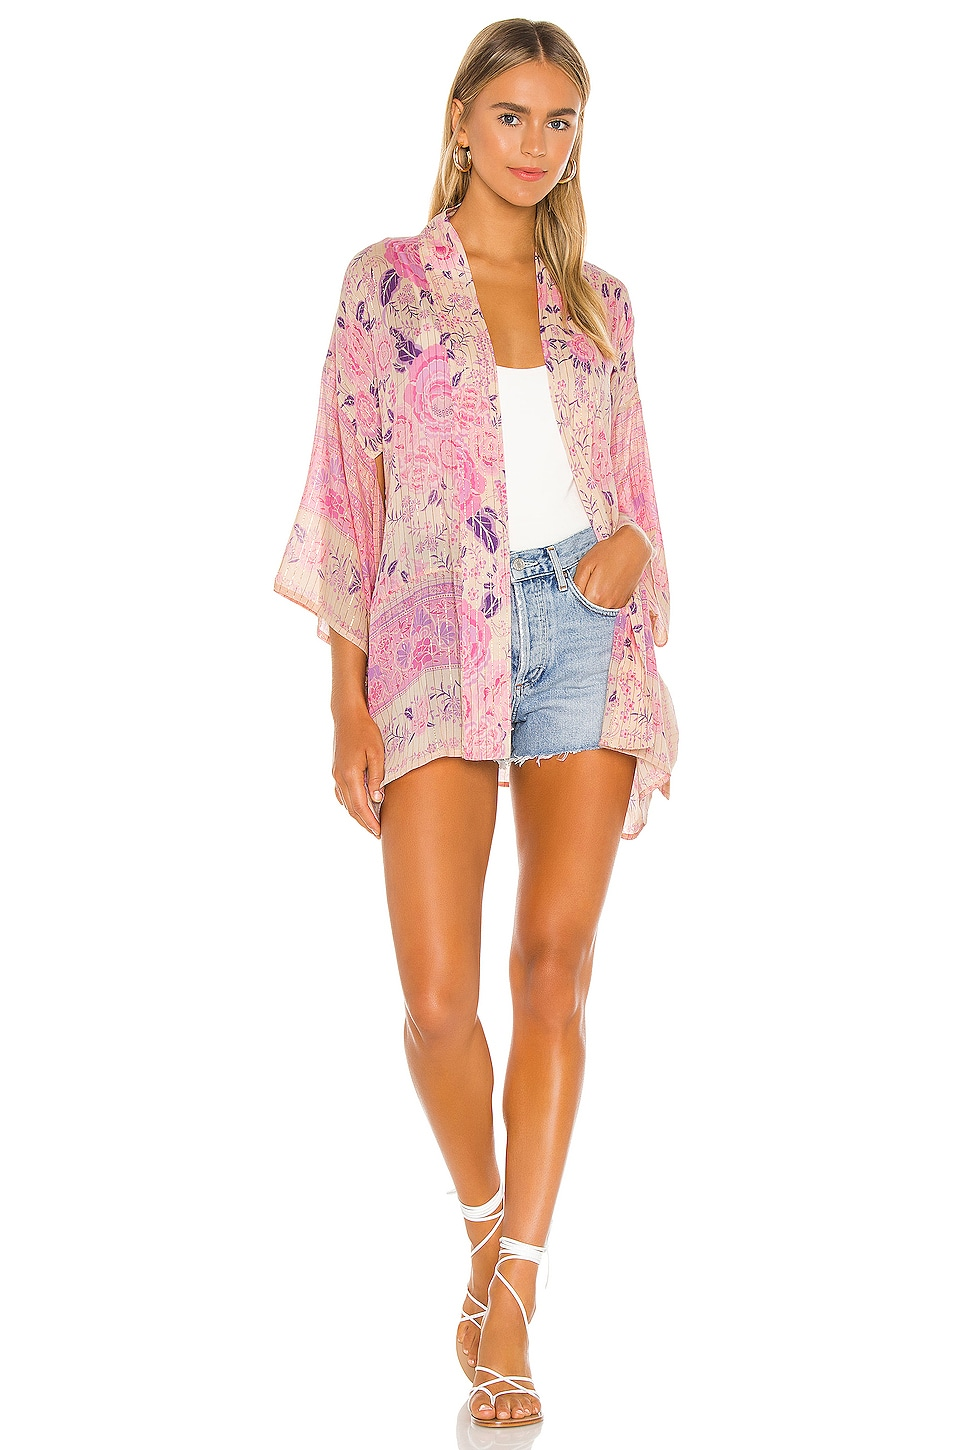 x REVOLVE Mystic Short Robe, view 5, click to view large image.